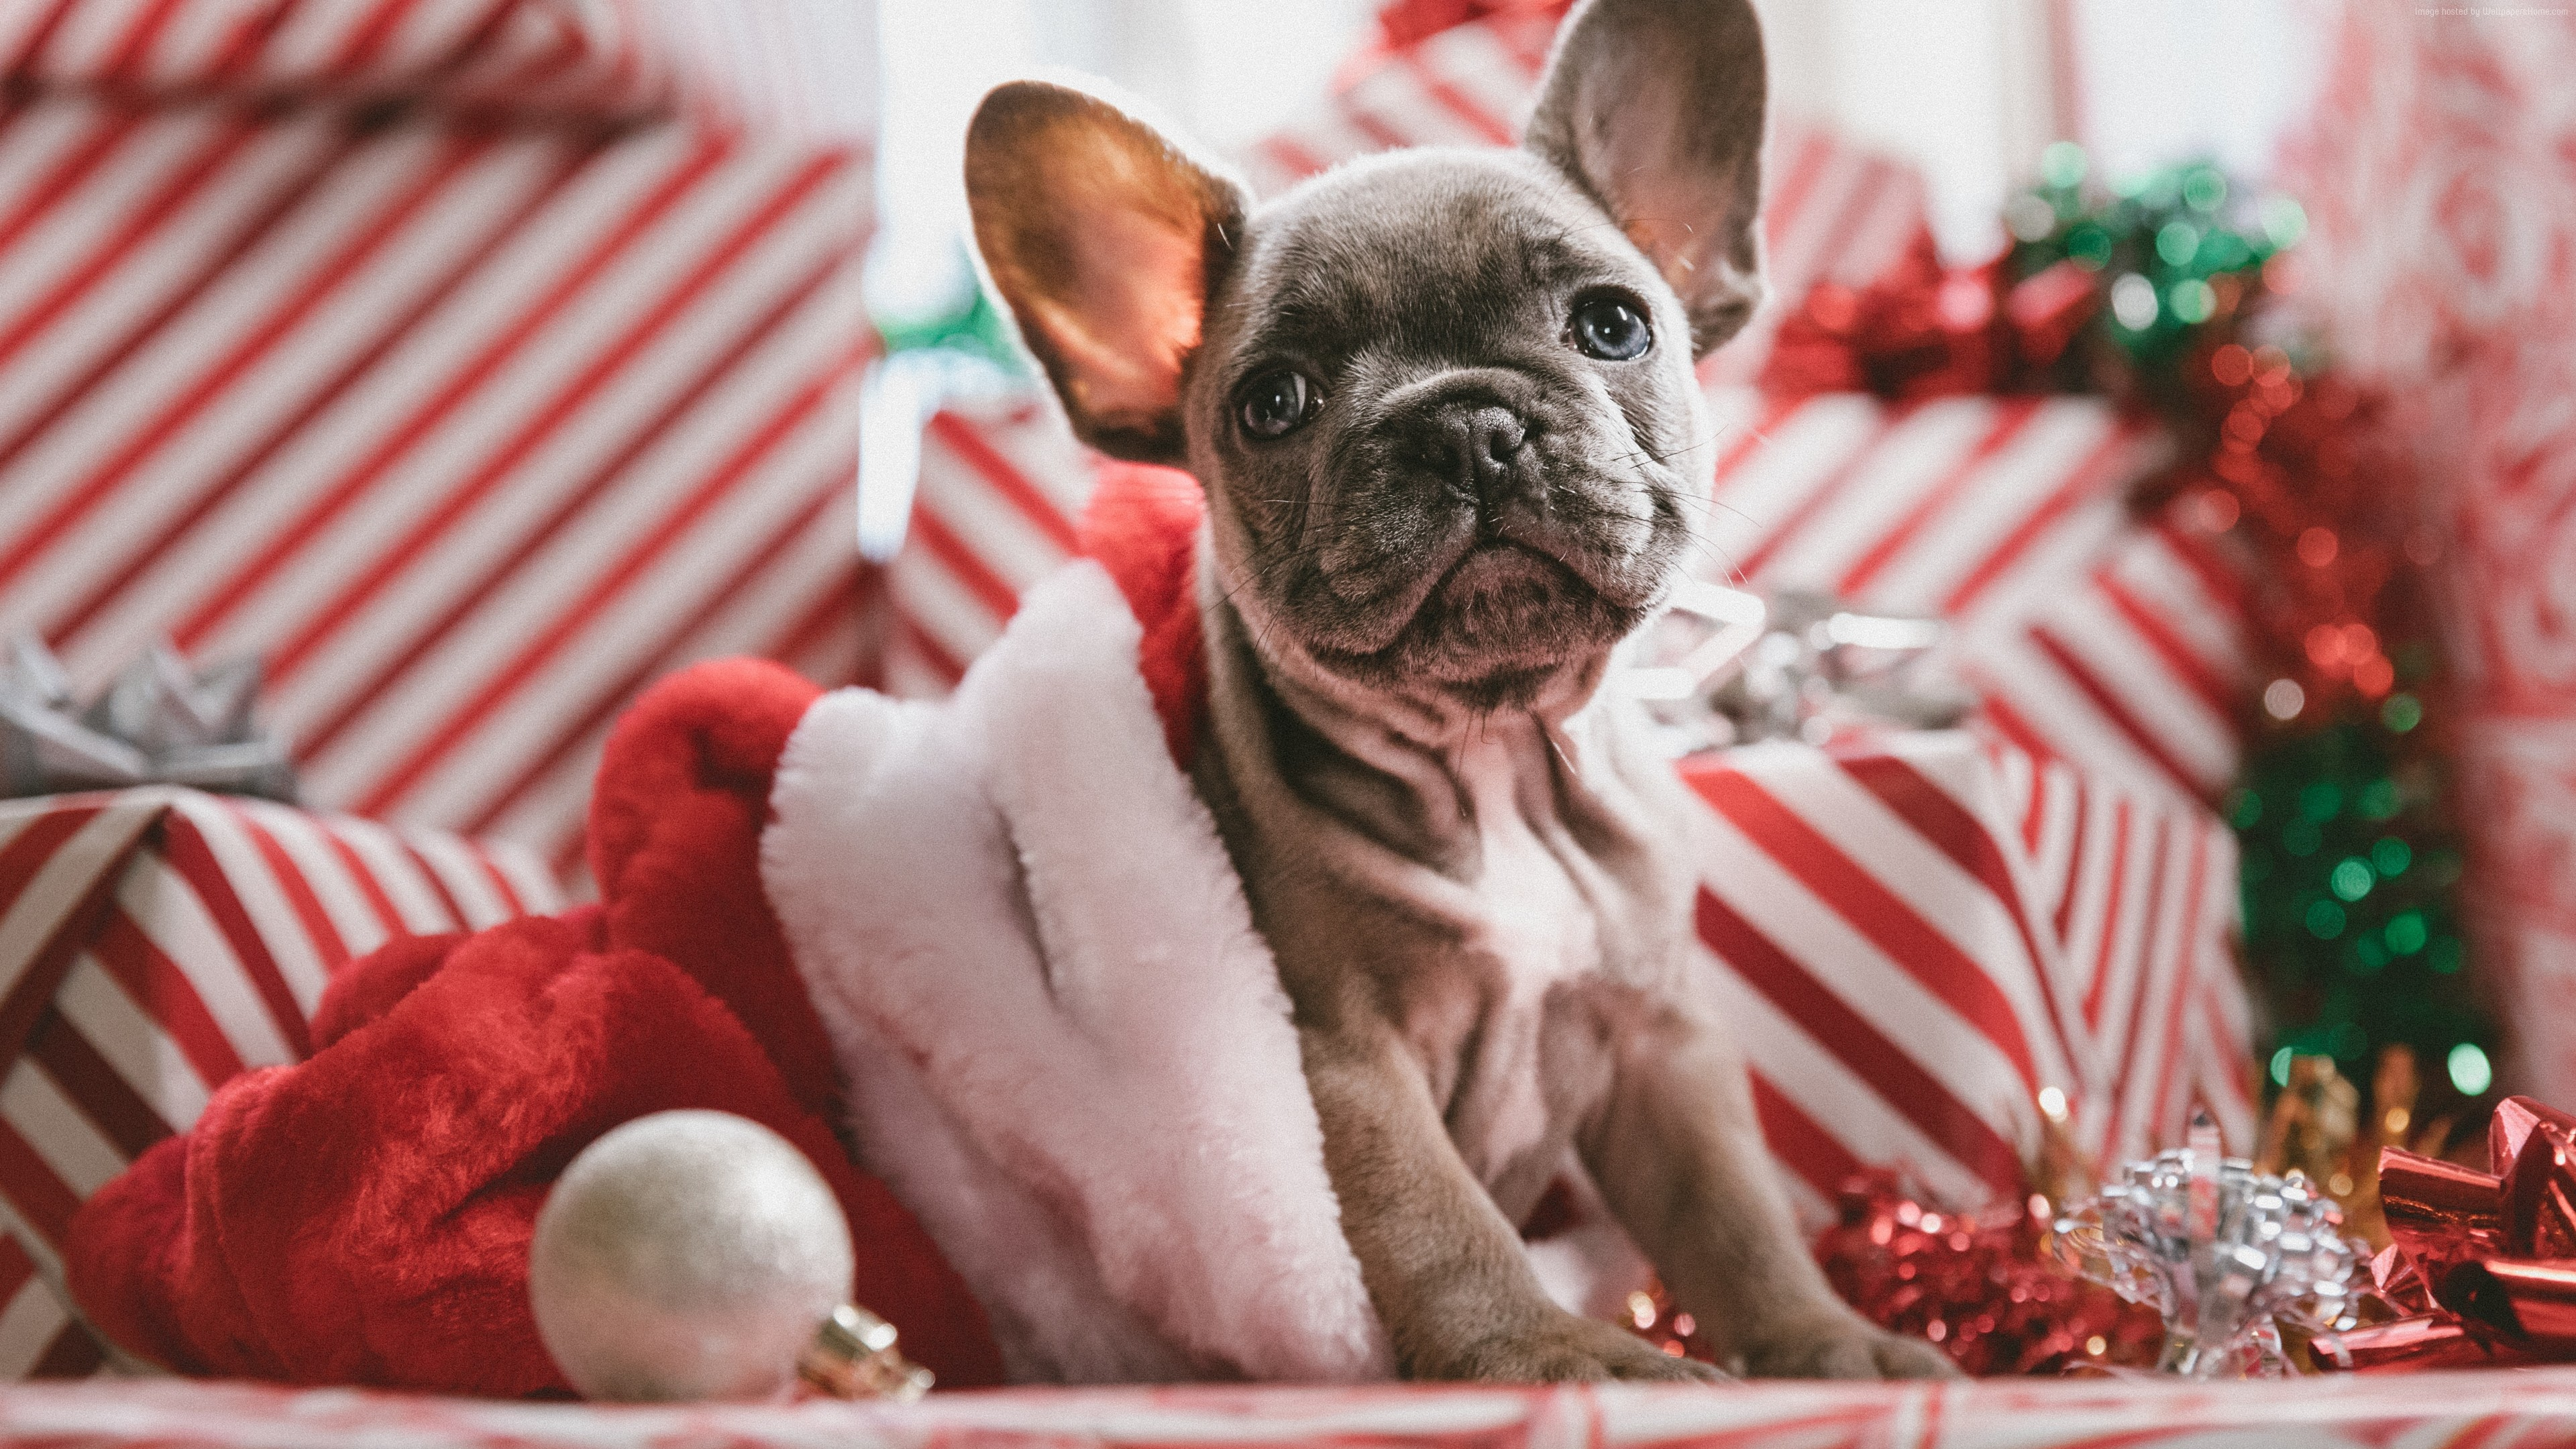 Wallpaper Christmas, New Year, puppy, cute animals, 5k, Animals